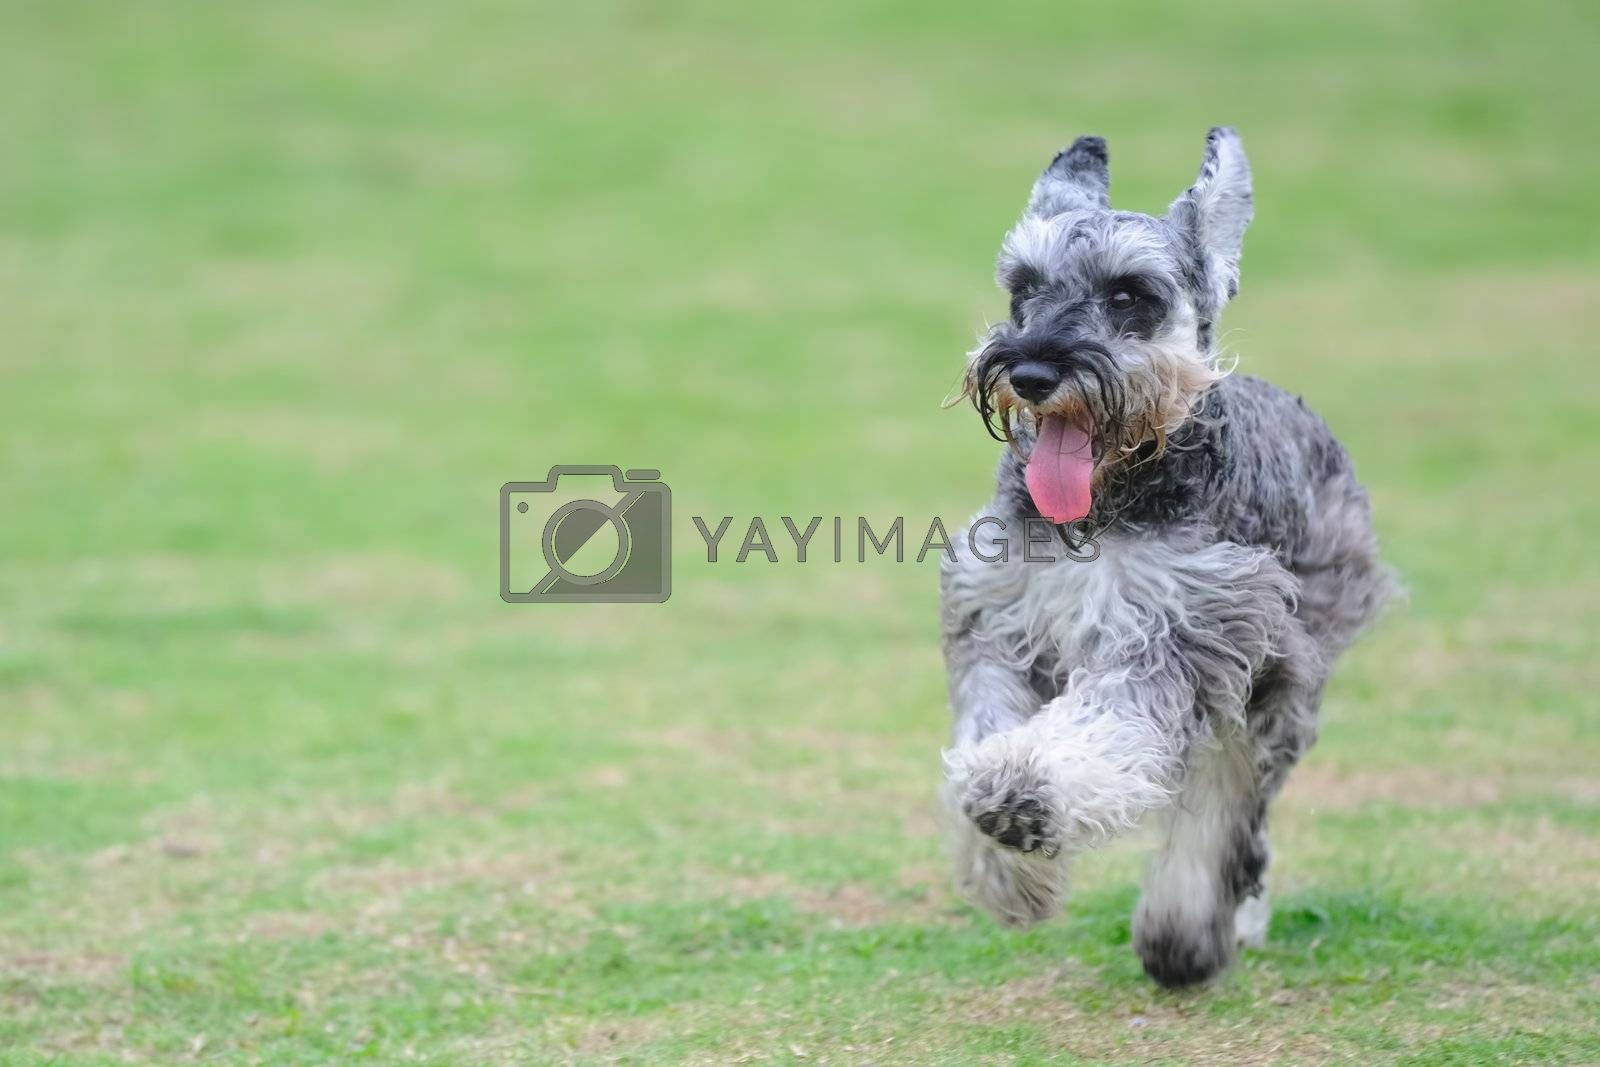 A miniature schnauzer dog running on the lawn